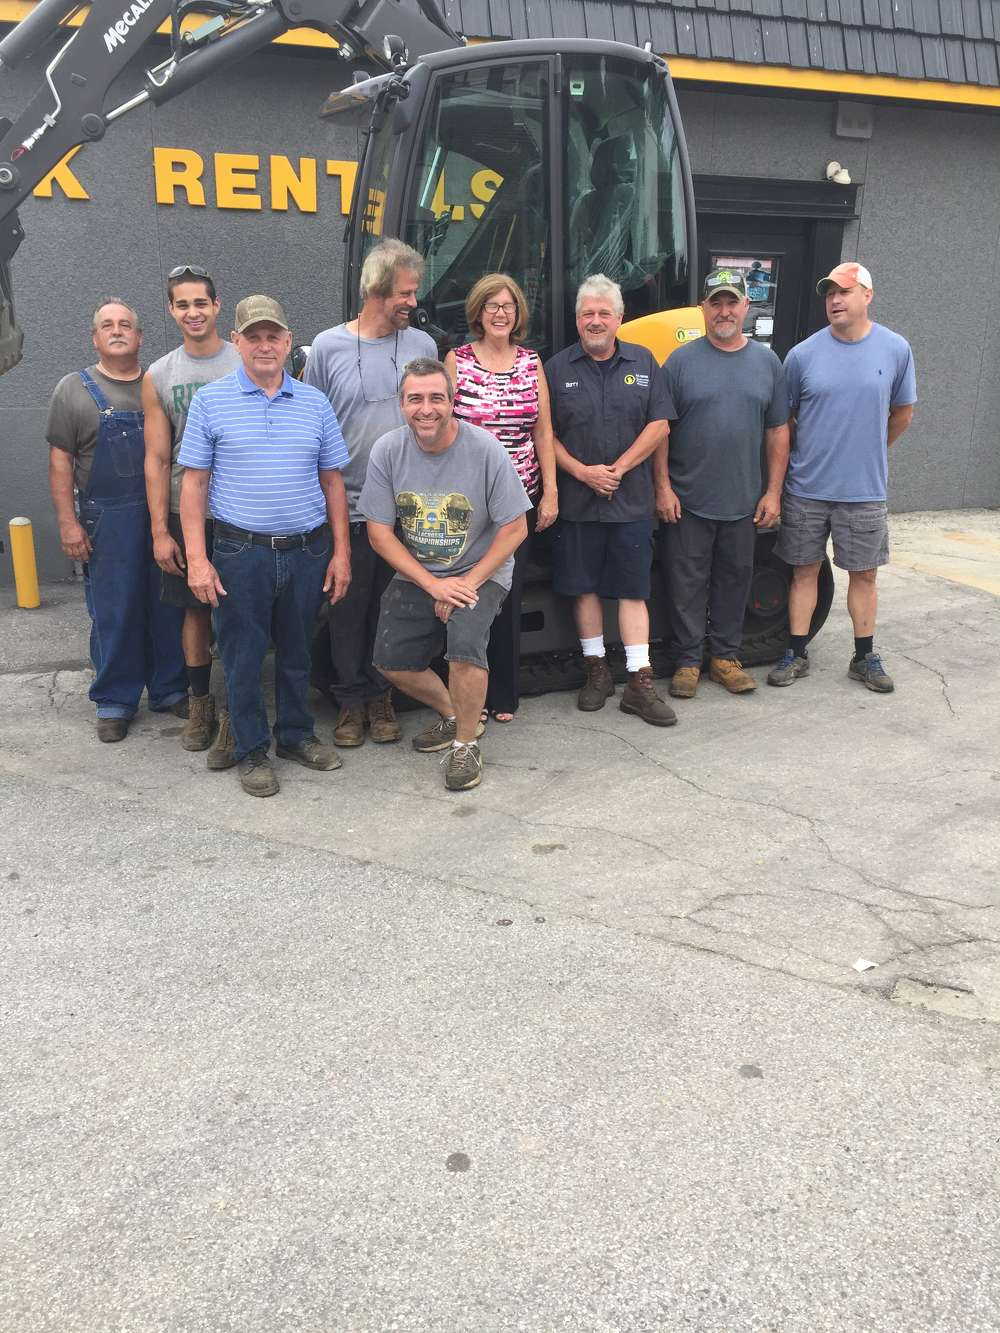 The OK Rental team. (L-R): Steve, service manager; Kevin, yard manager (Owner Ron Scoleri Sr.'s grandson); Ron Scoleri Sr., president; Tony, service technician, Dave, parts counter manager; Anna, office manager; Barry, service technician, Brad, service technician; and Ron Scoleri Jr., general manager.